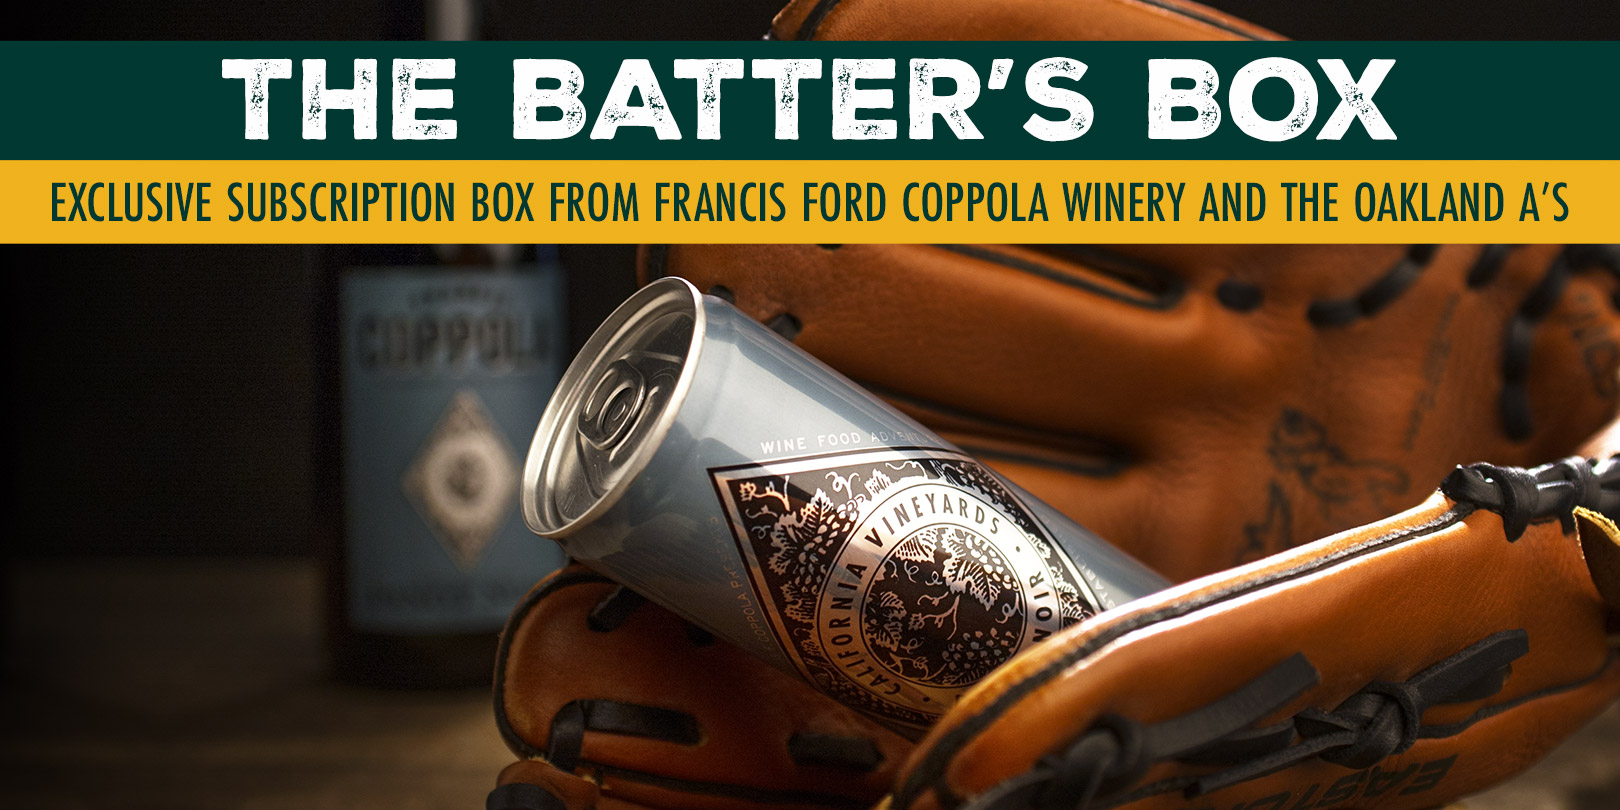 The Batter's Box Subscription ad with a wine can inside a baseball mitt. - Featured Item